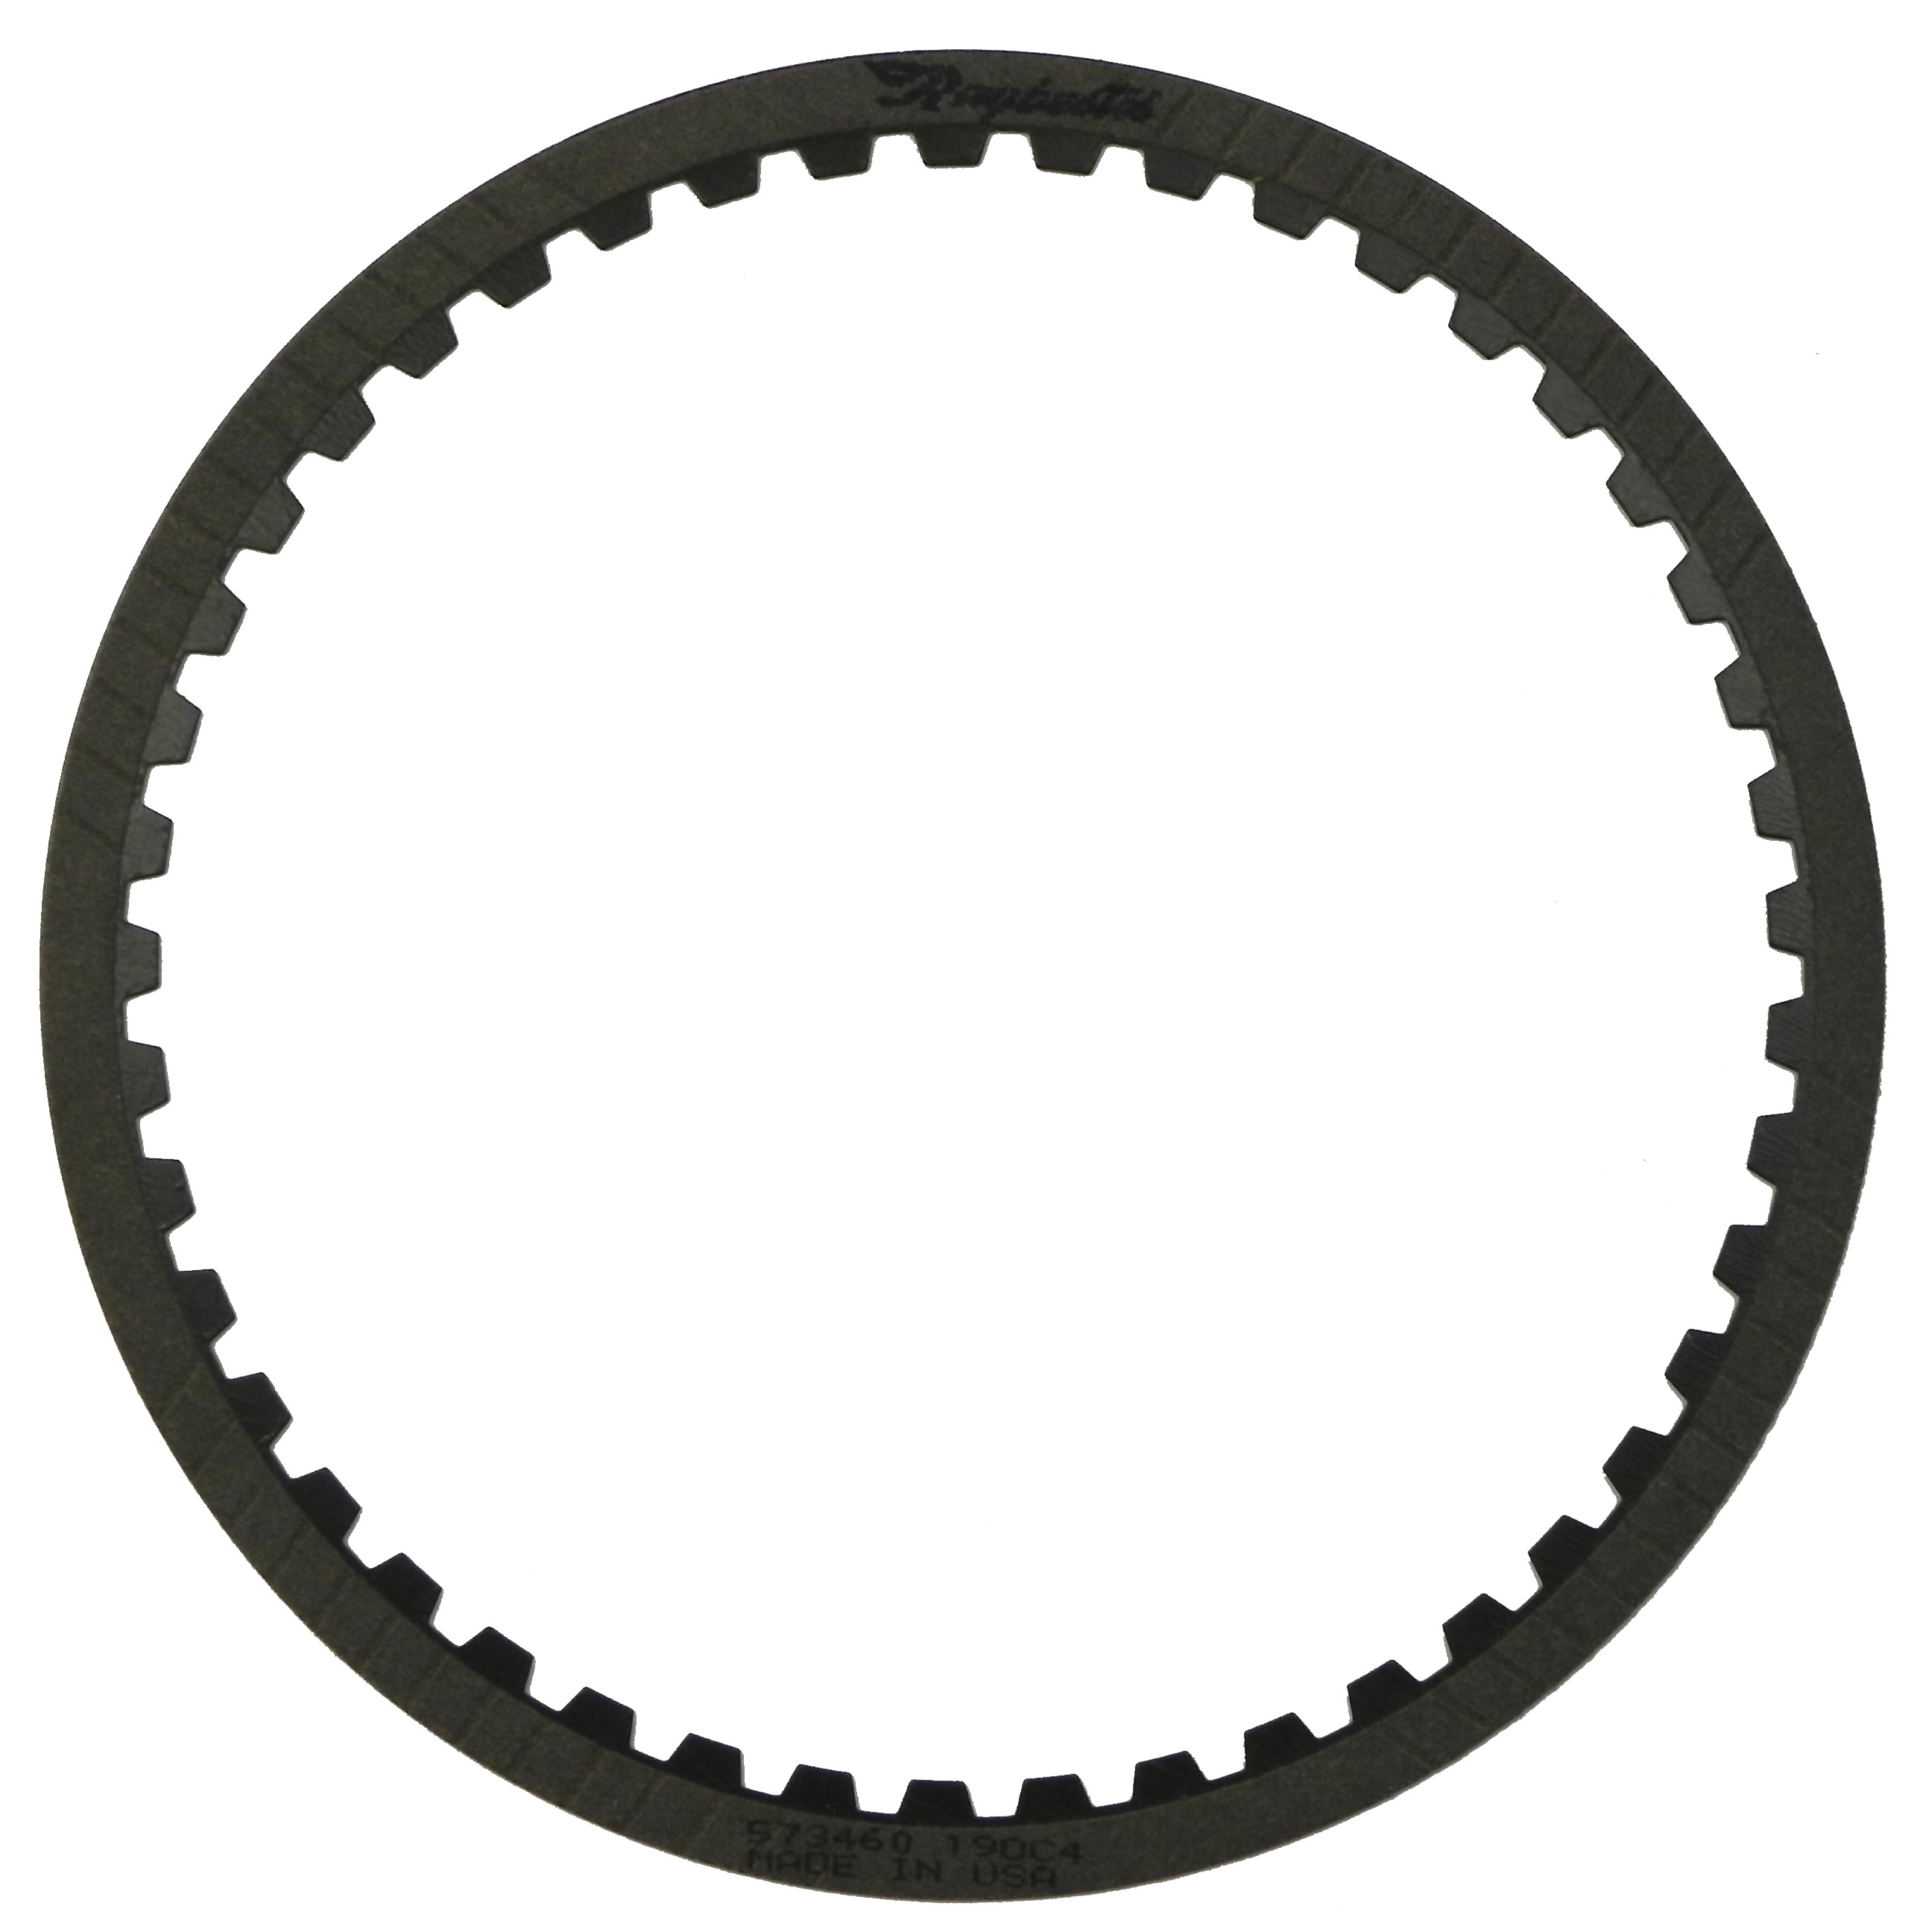 R573460 | 1990-ON Friction Clutch Plate High Energy Reverse High Energy